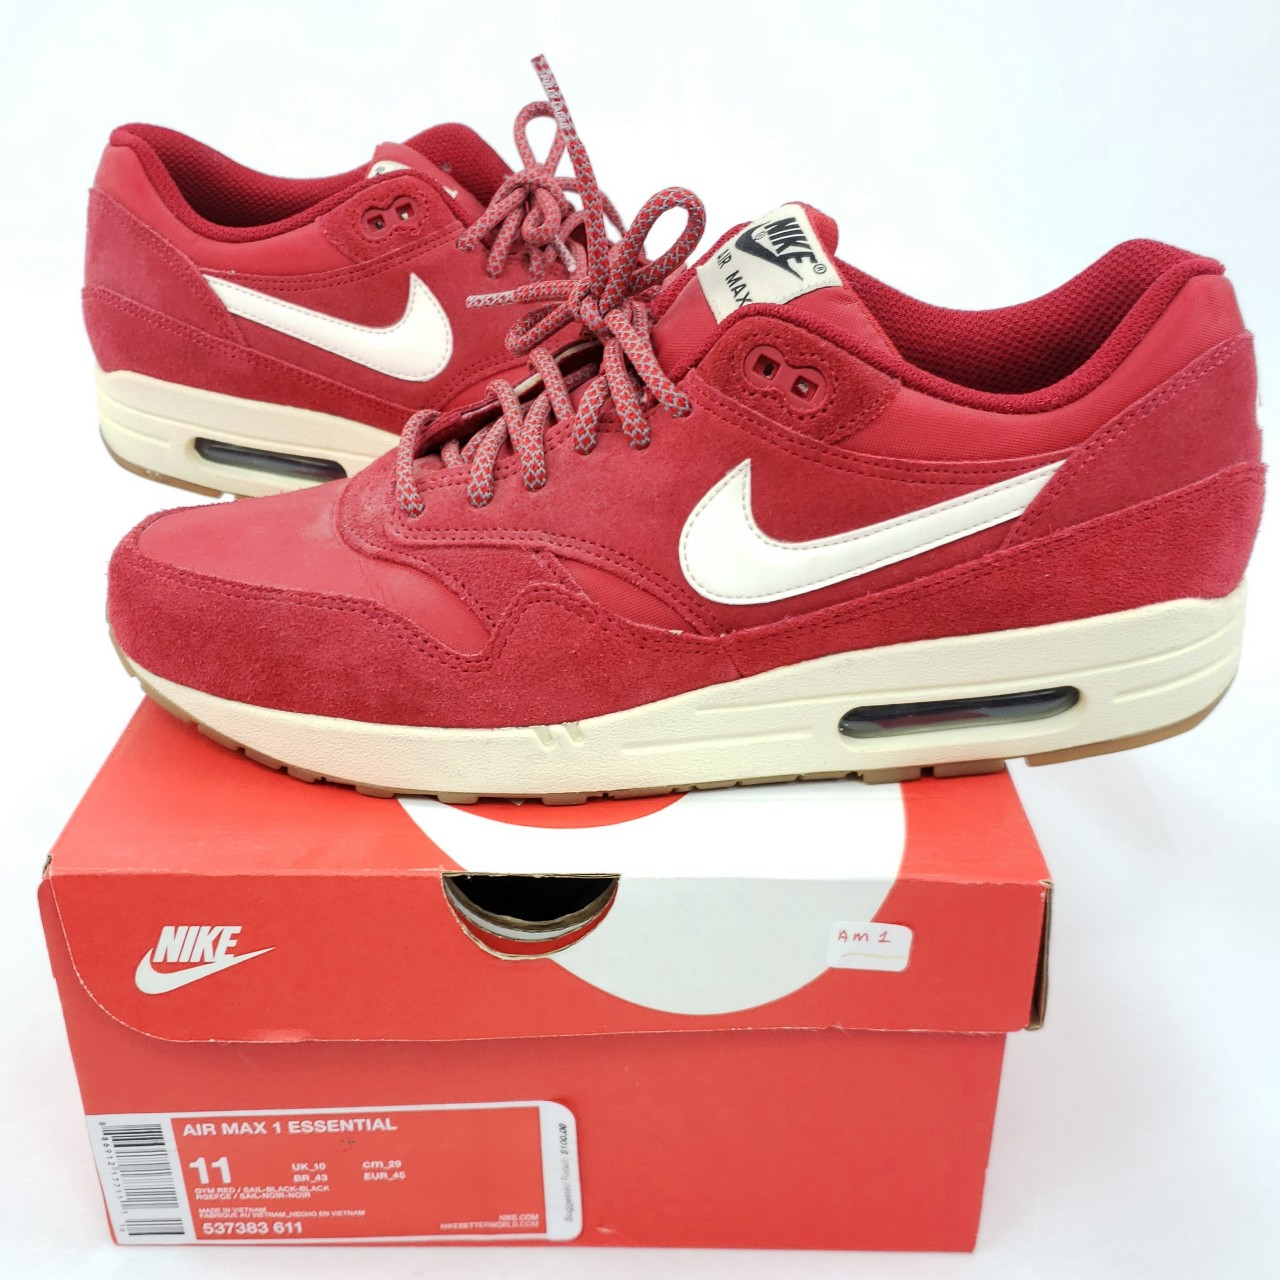 nike air max 1 essential red suede